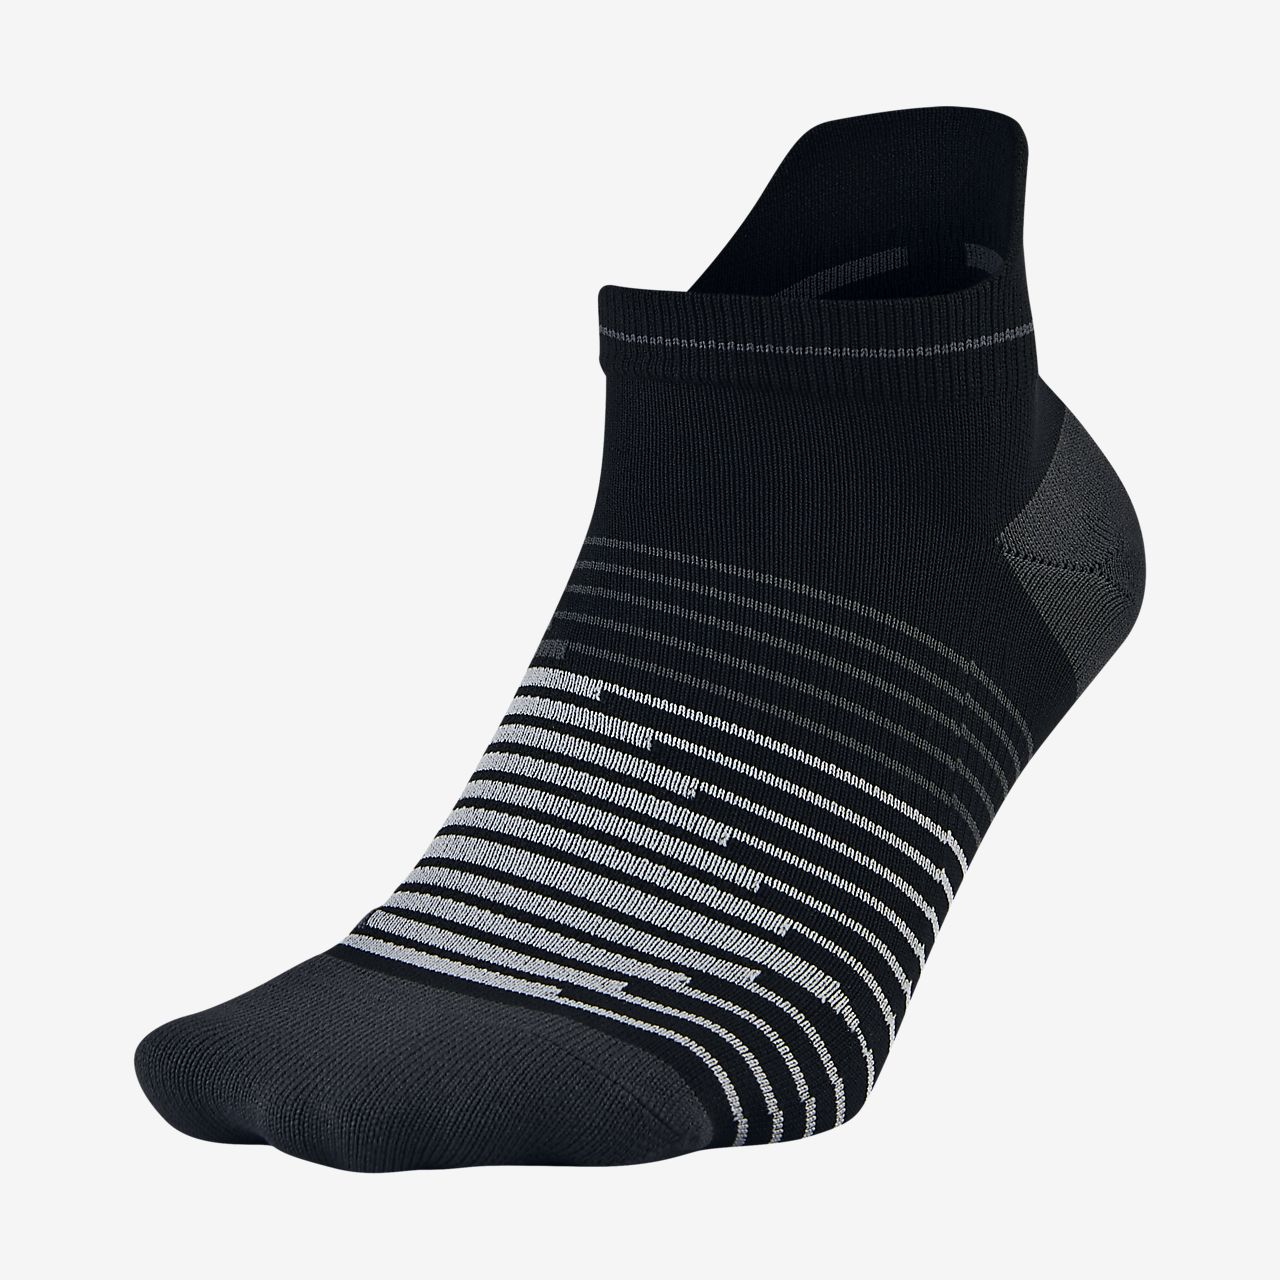 Nike Dri-FIT Lightweight No-Show Tab Running Socks